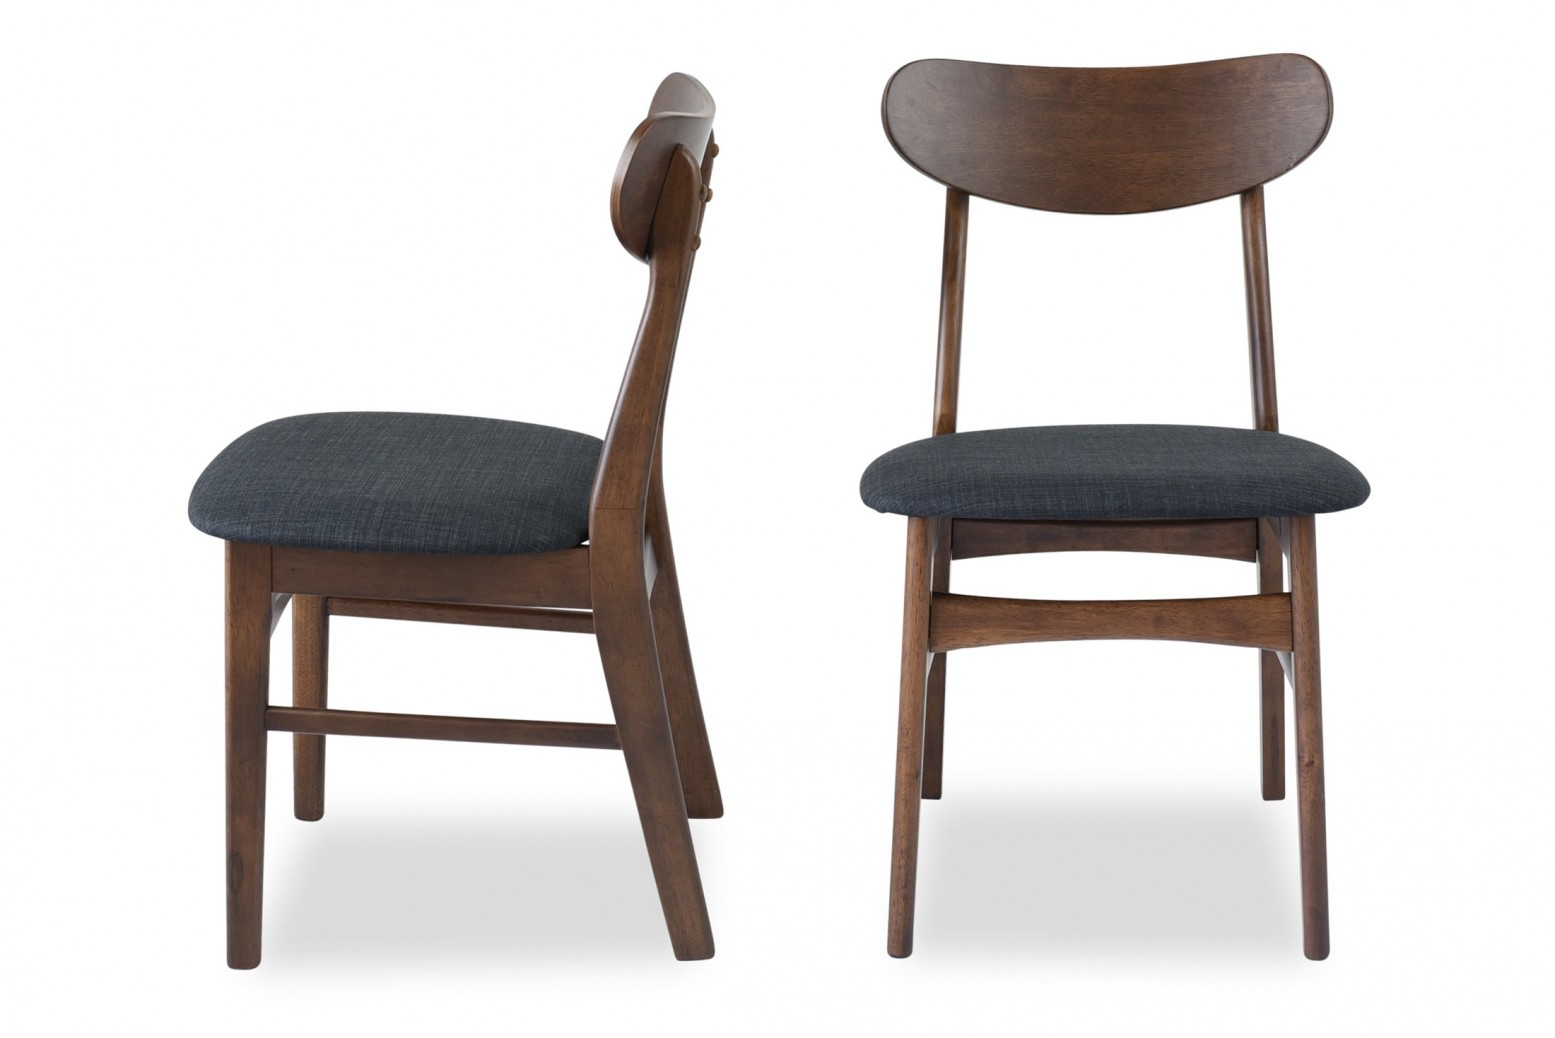 Amazing Gramercy Mid Century Modern Dining Chair Set Of 2 Ncnpc Chair Design For Home Ncnpcorg